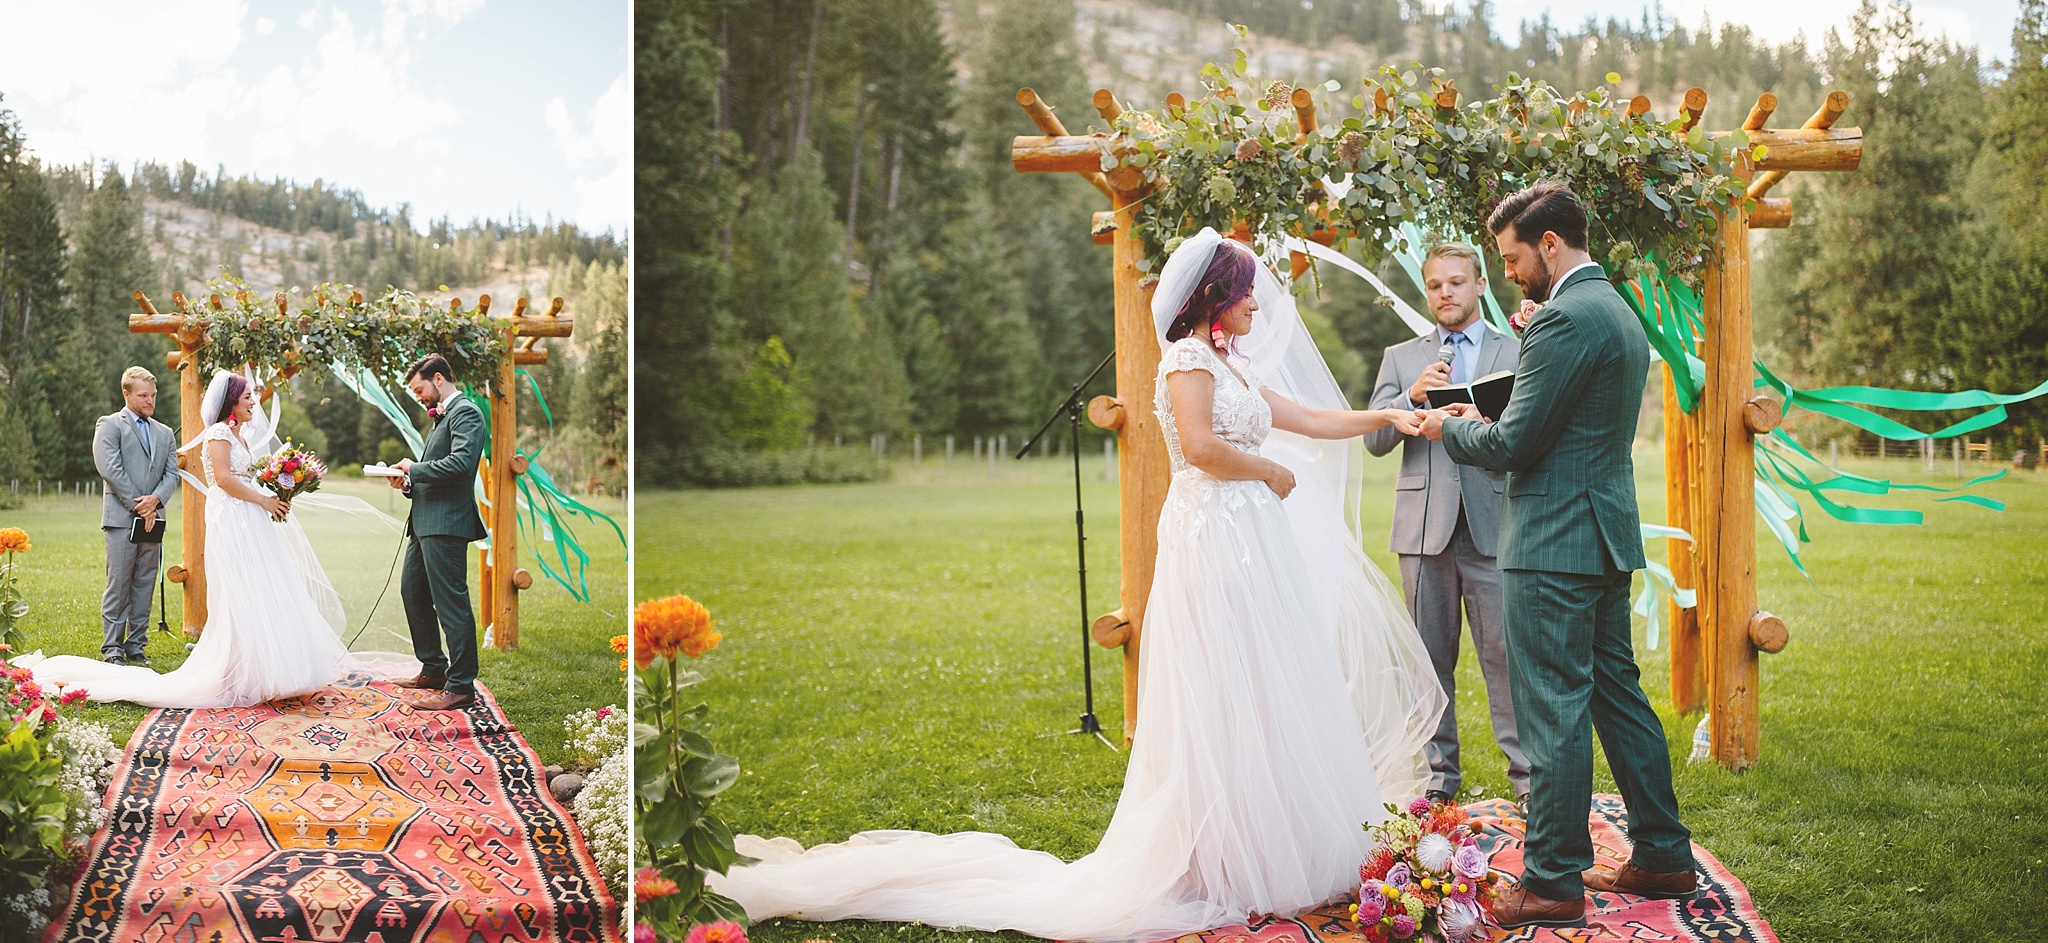 colorful bohemian wedding decoration